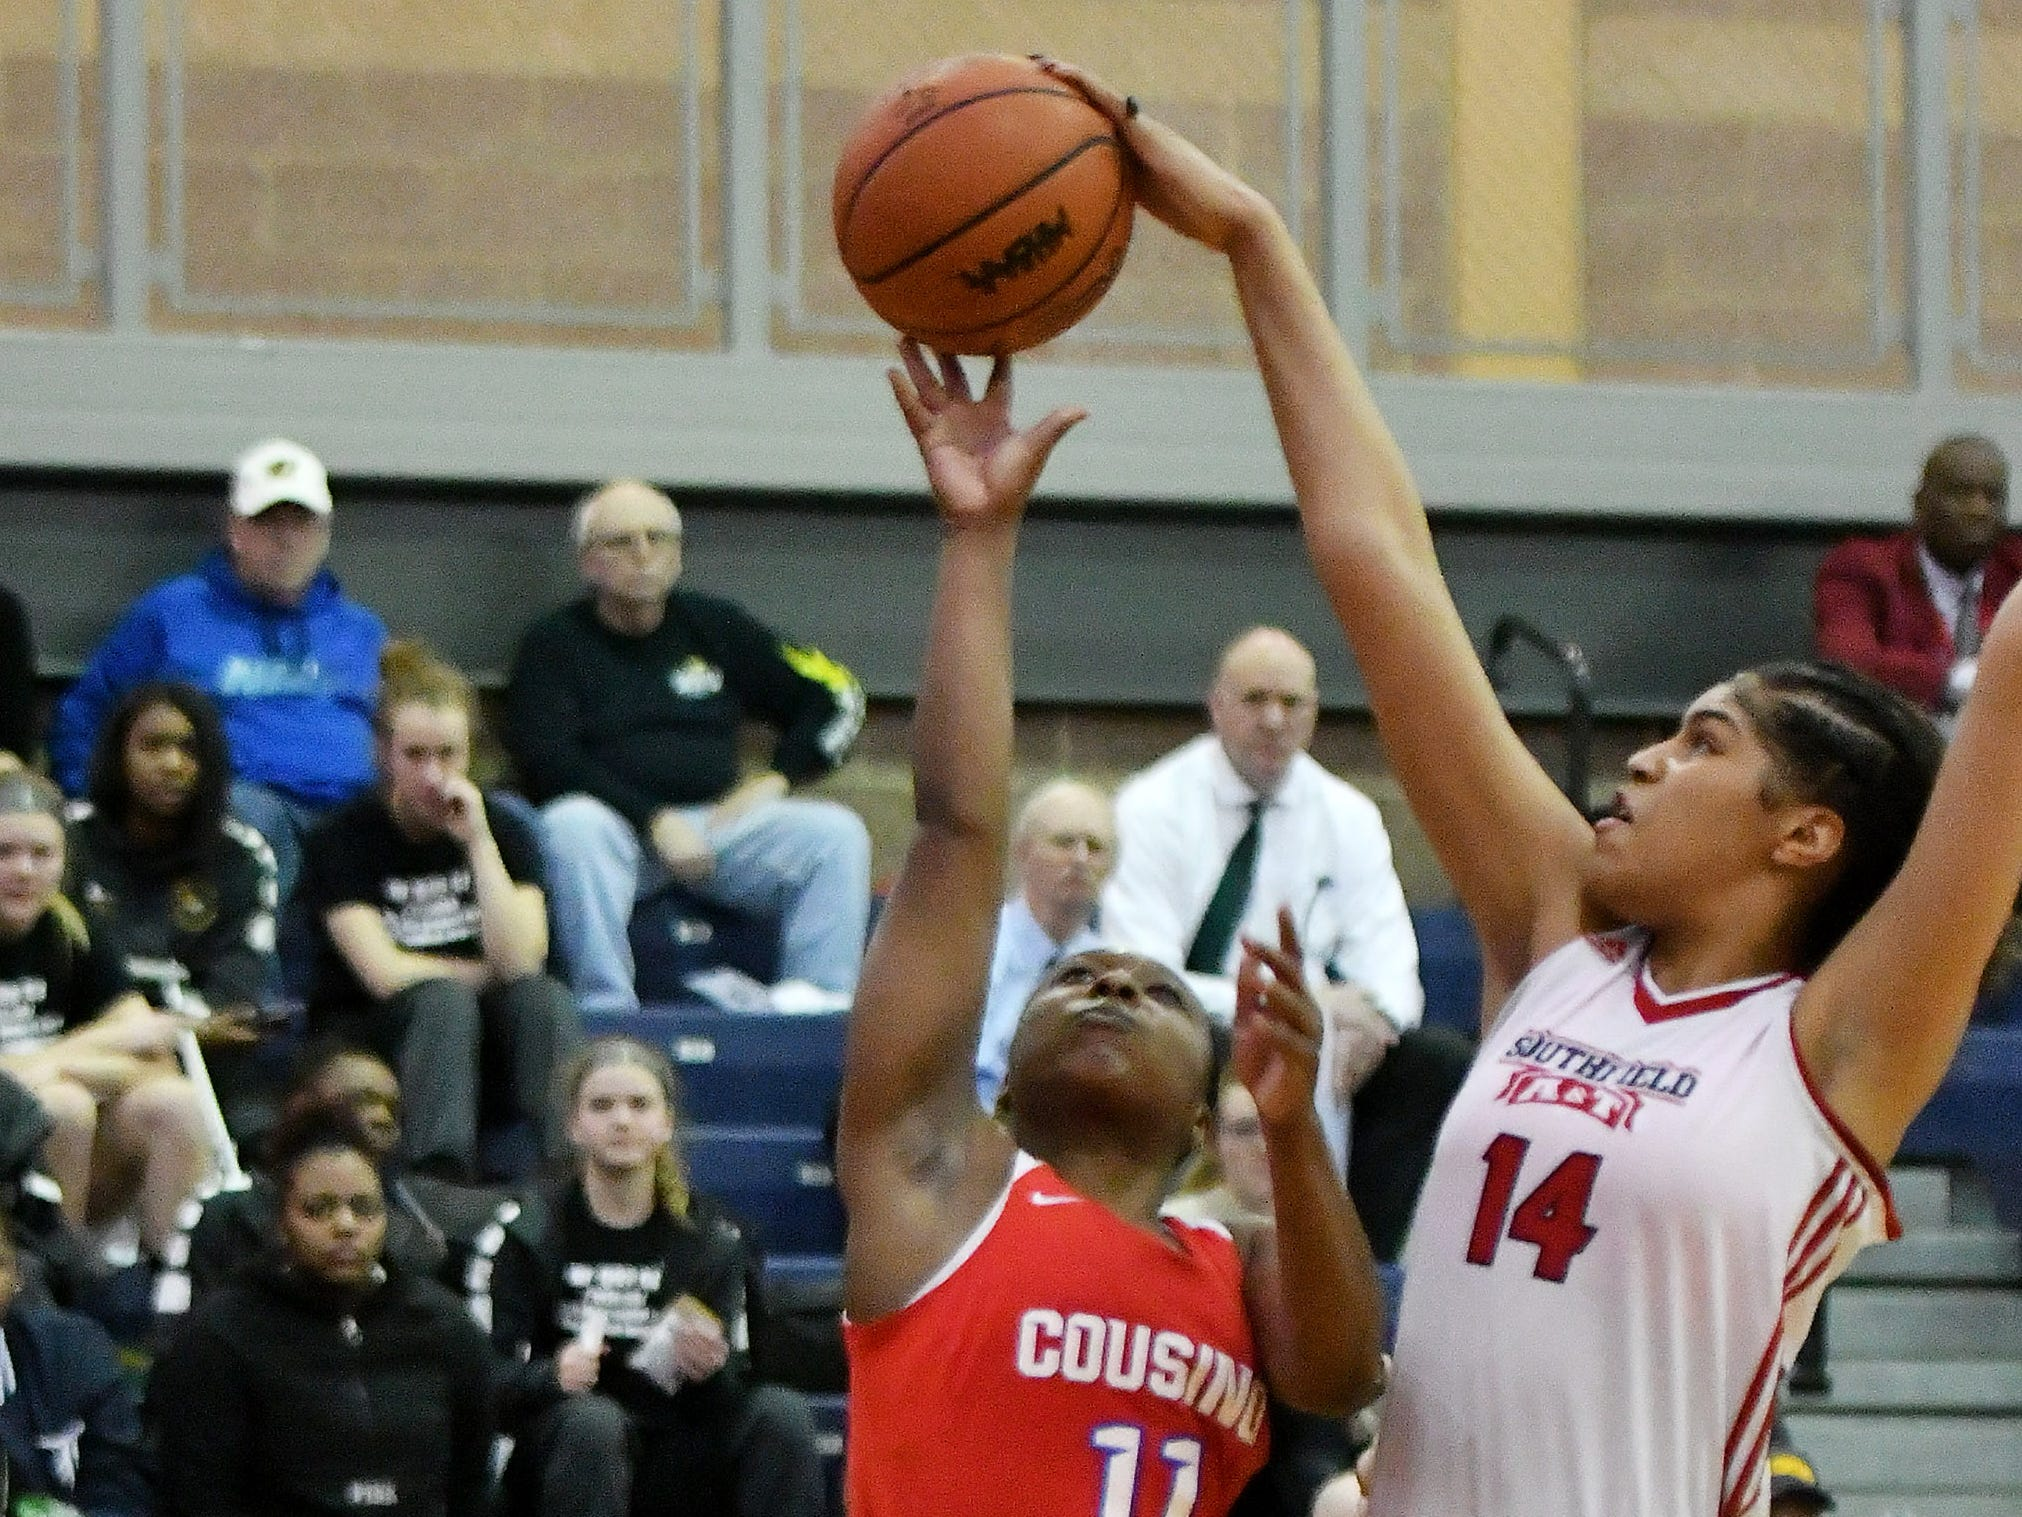 Southfield A&T's Jasmine Worthy (14) blocks a shot buy Warren Cousino's Mackenzie Cook (11) in the first half.